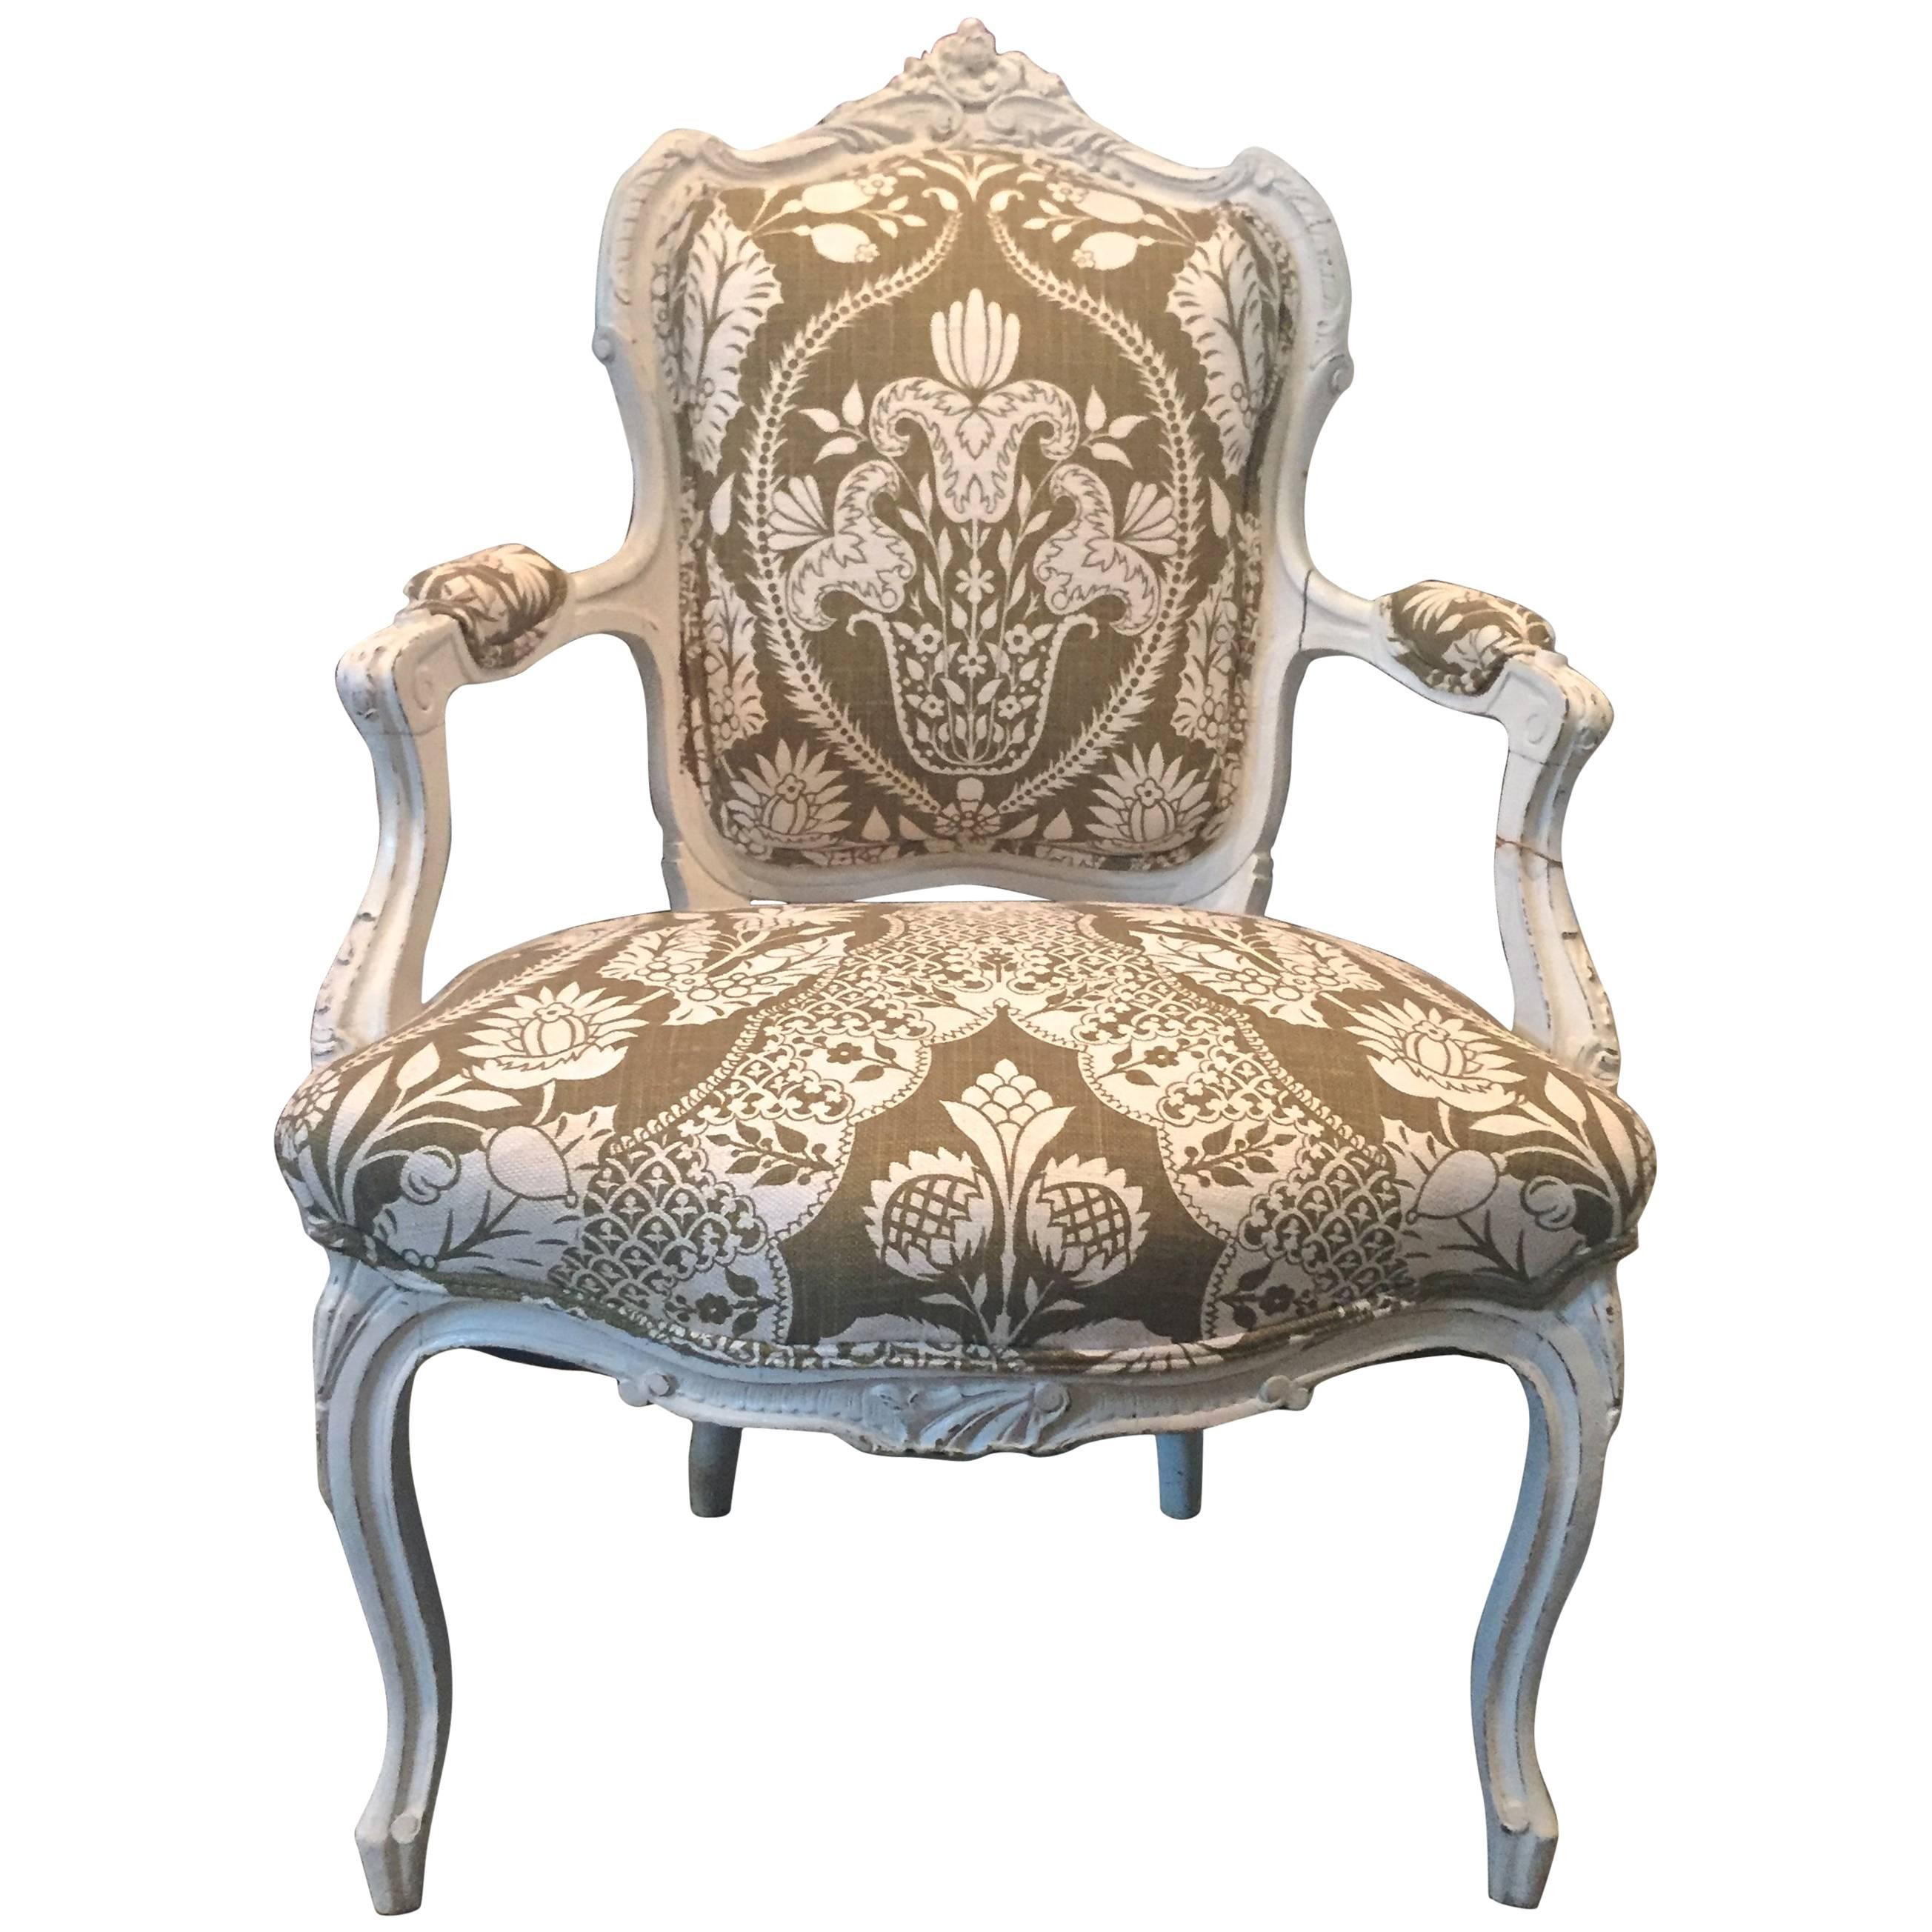 19th Century Carved French Chair